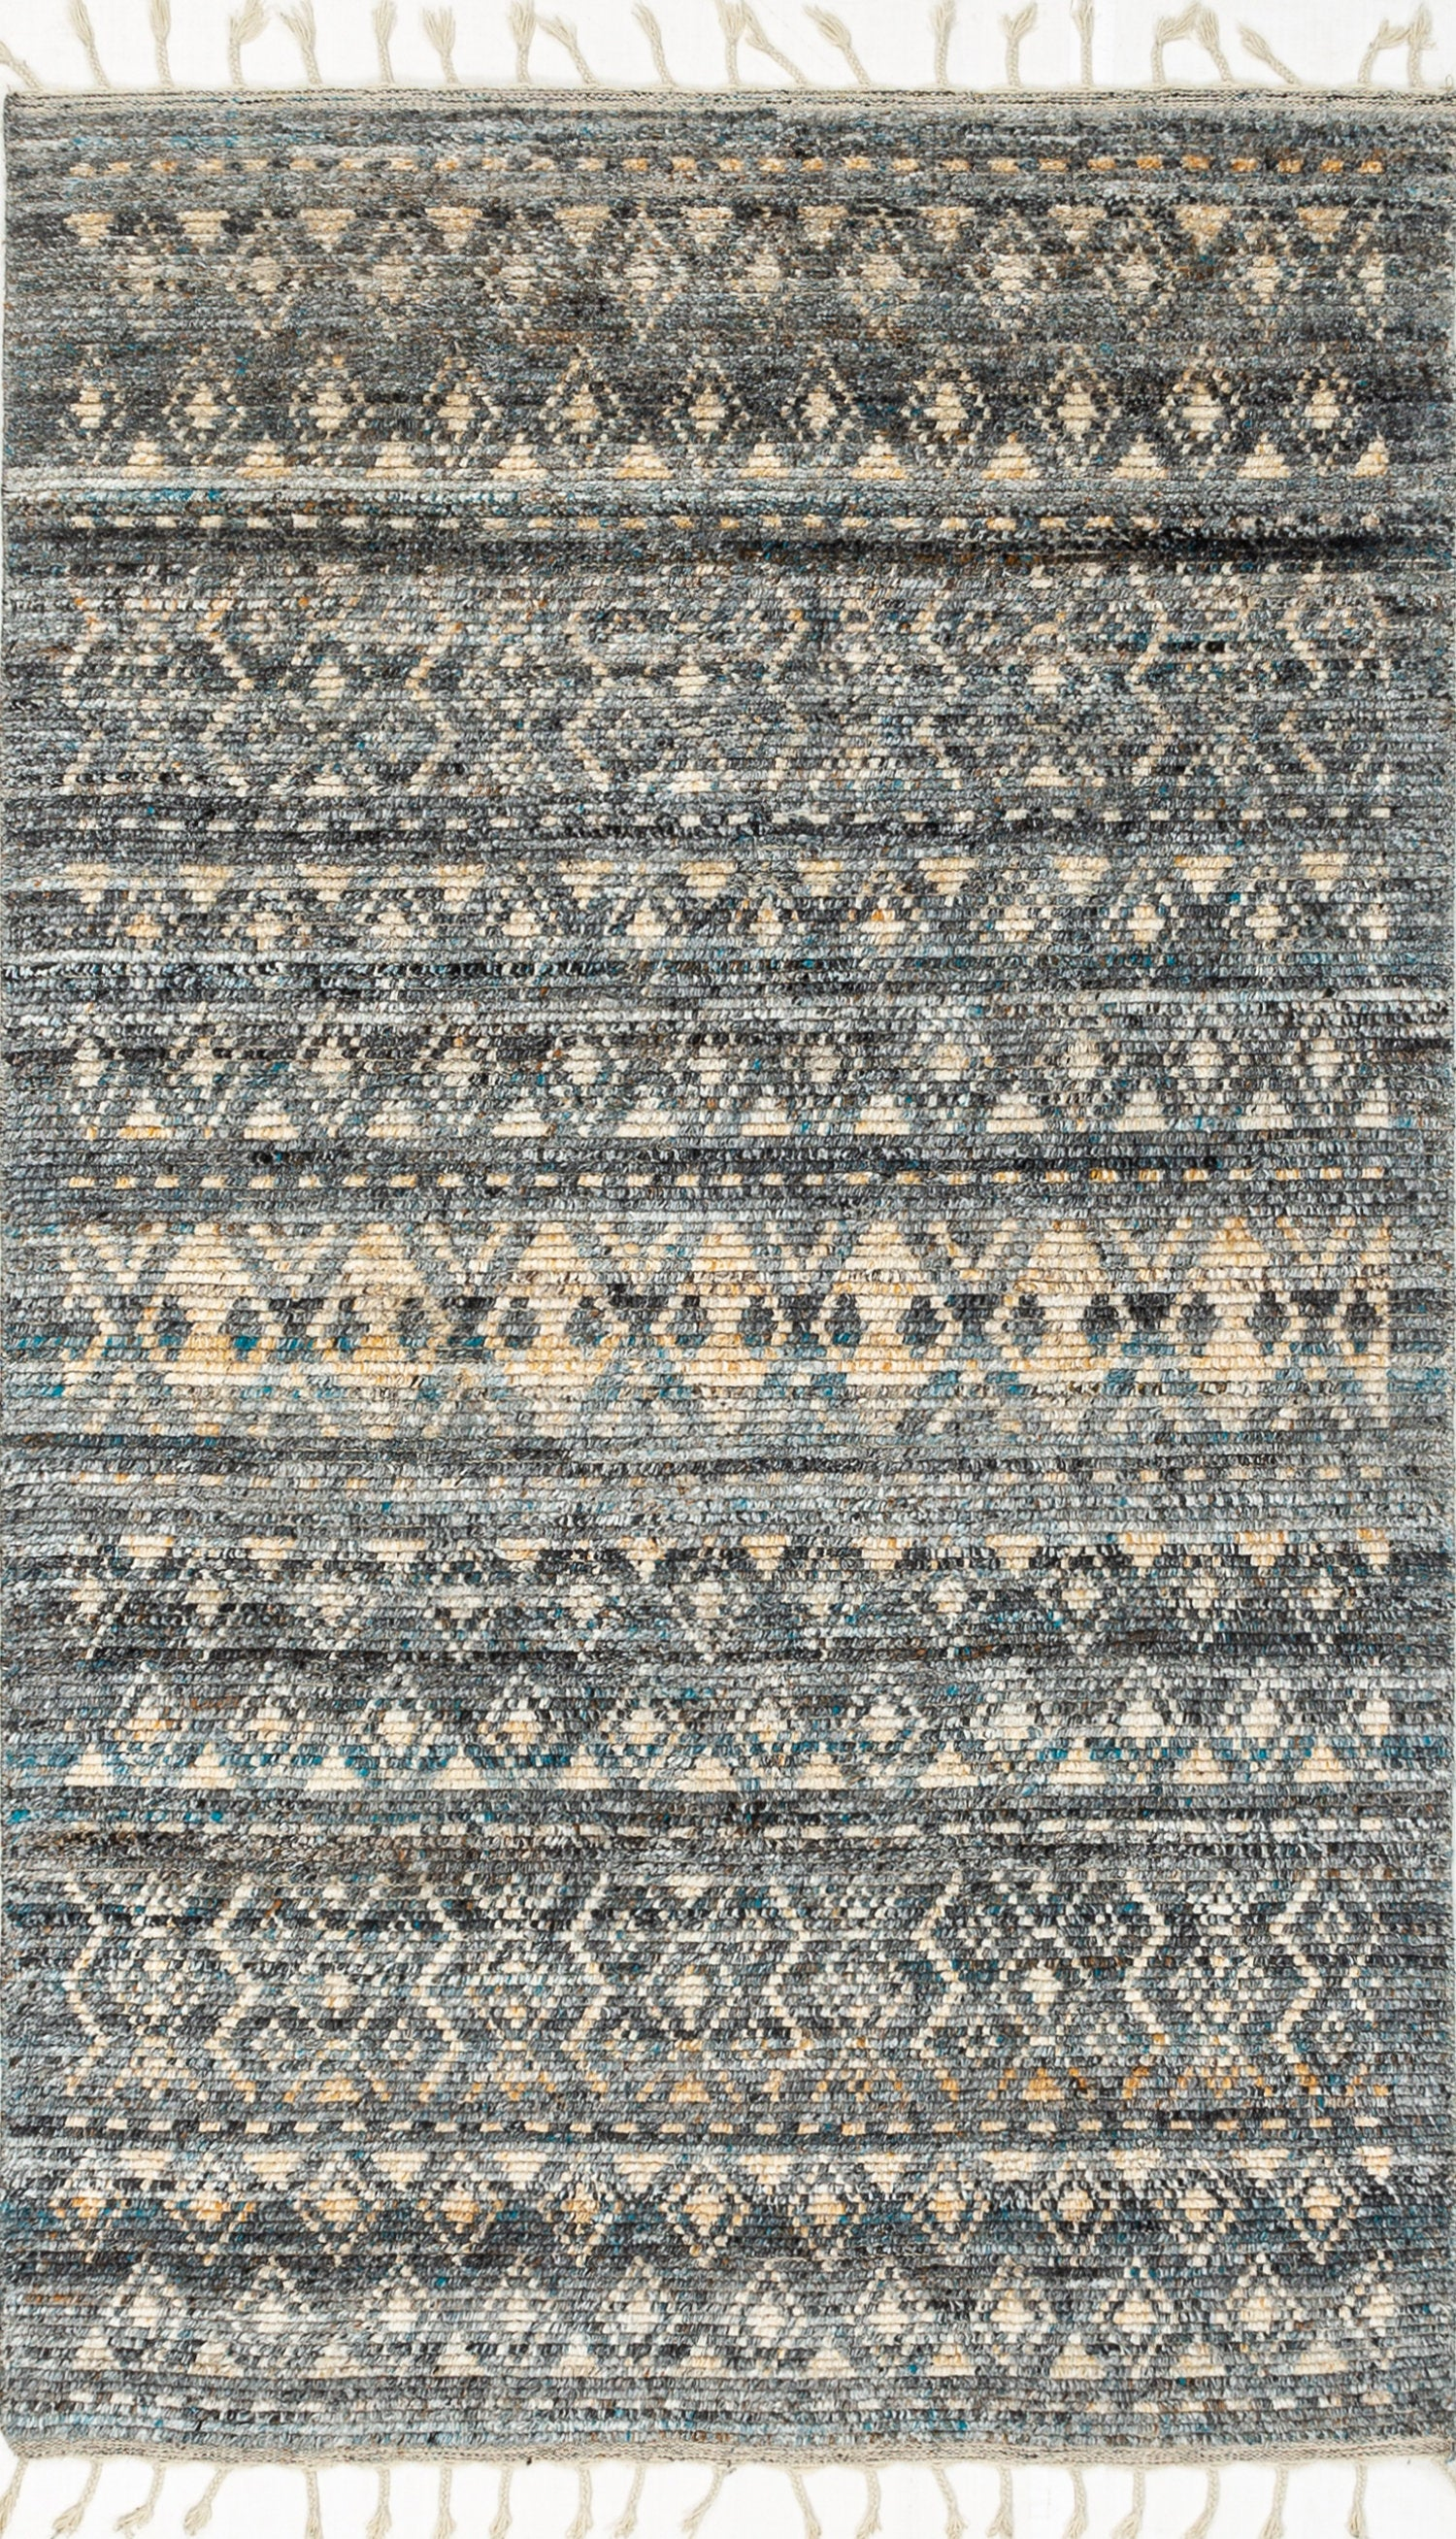 "Kilim Geometric Design Rug, Tribal Rug Living Room Decor, turkish teppich Kitchen Wool Rug Oriental Hand knotted Area Rug 5'3"" x 7'6""  SP594"